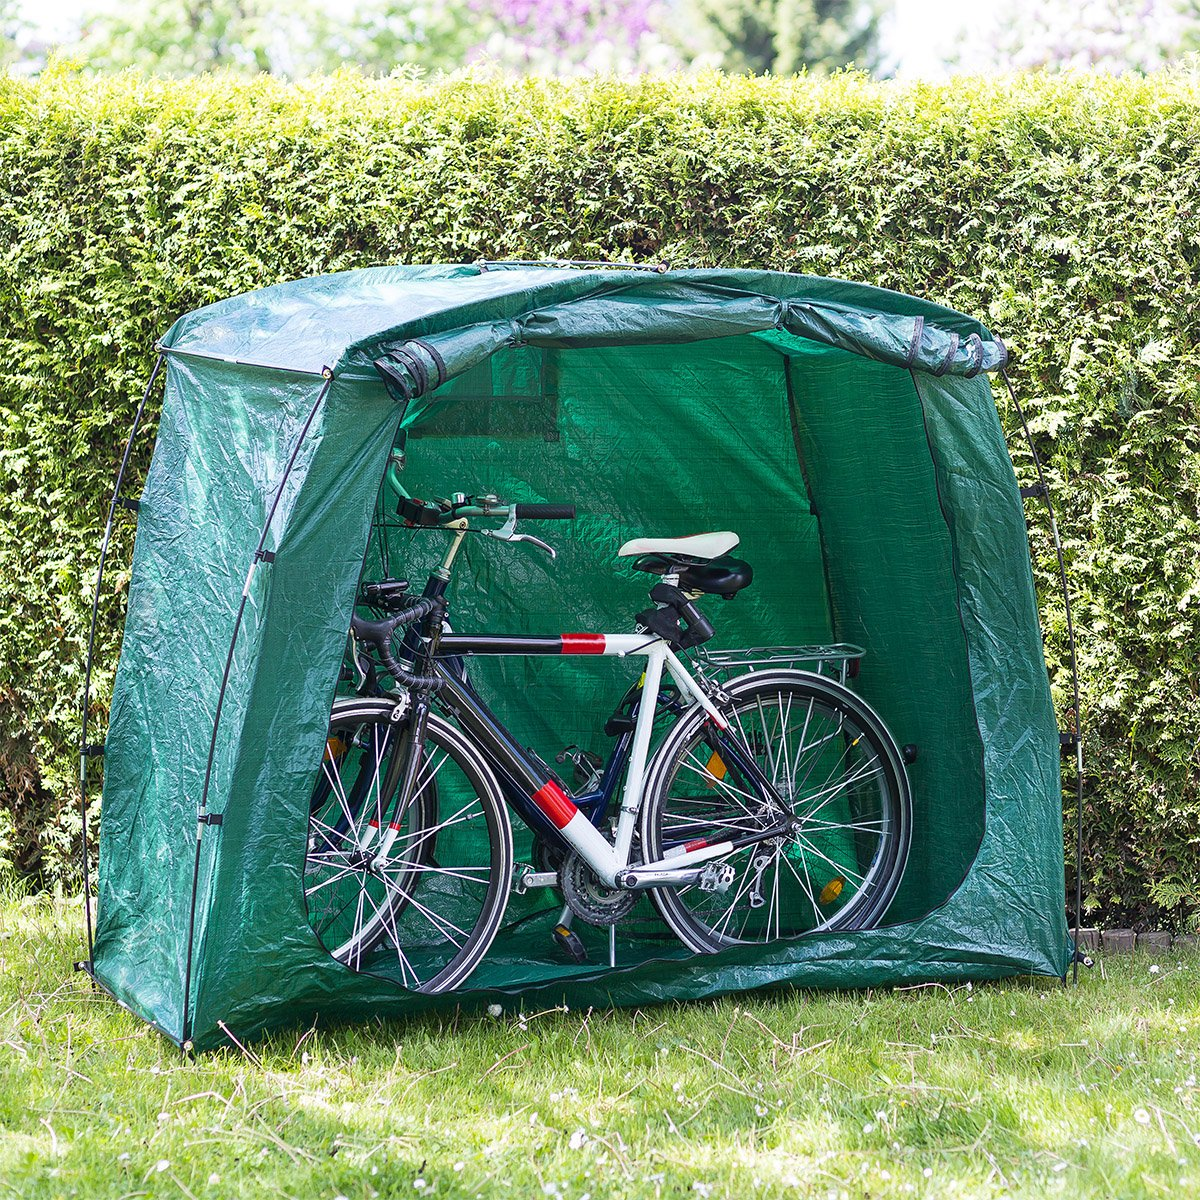 Relaxdays Bicycle Cover Bike Garage Shelter Tent 156.5 x 84.5 x 181.5 cm with Transport Bag u0026 Securing Pegs Bike Garage for C&ing or Trips or the Garden ... & Relaxdays Bicycle Cover Bike Garage Shelter Tent 156.5 x 84.5 x ...